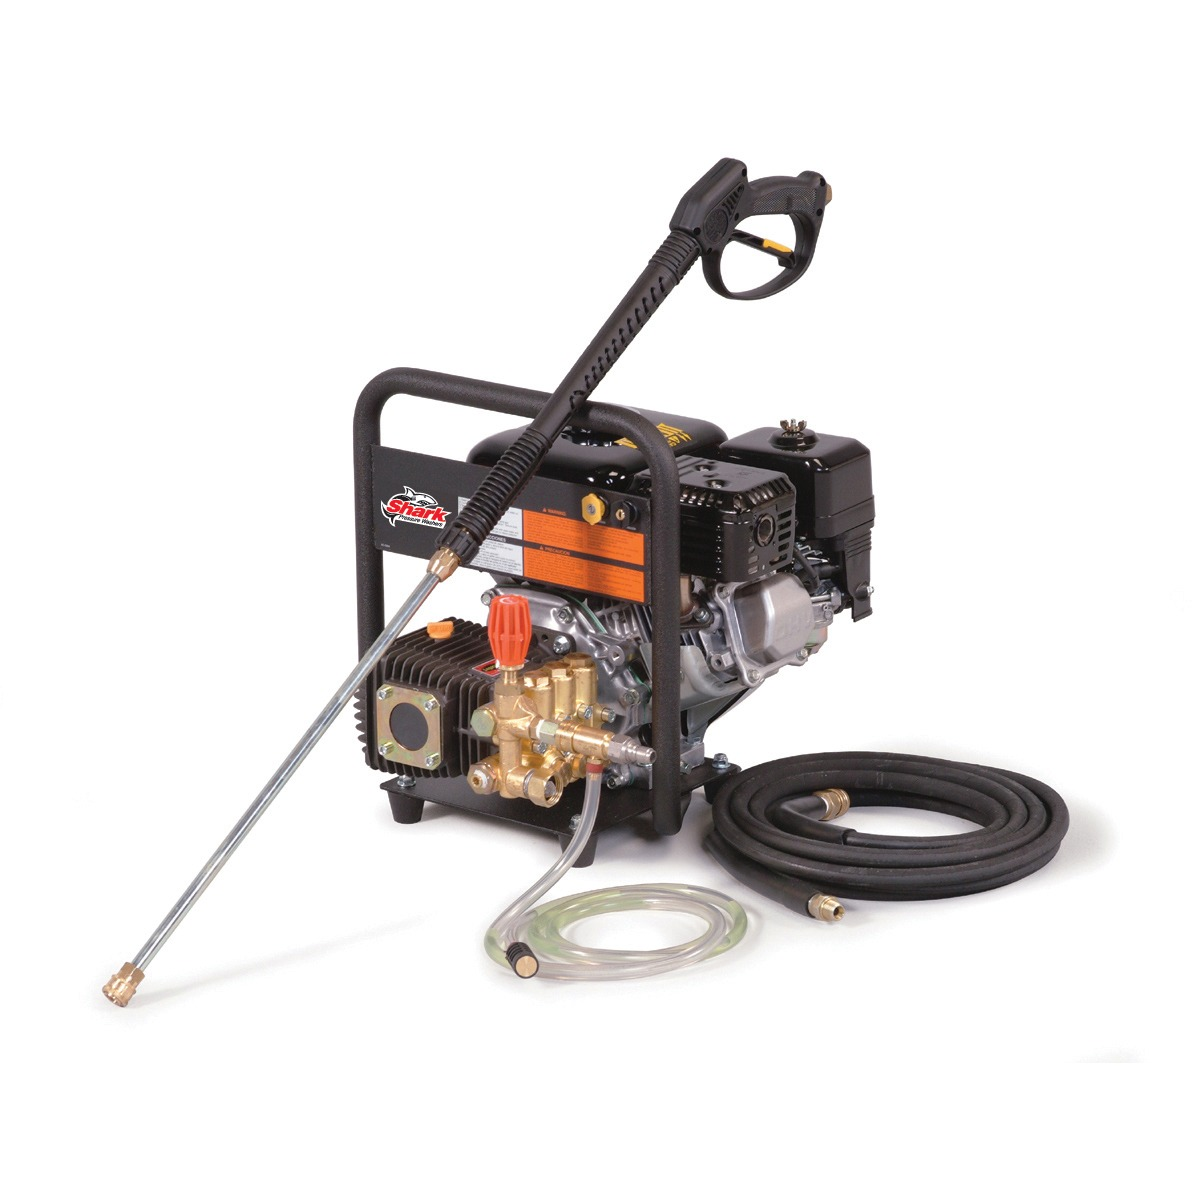 Pressure Washer 2400 Psi Ralph S General Rent All